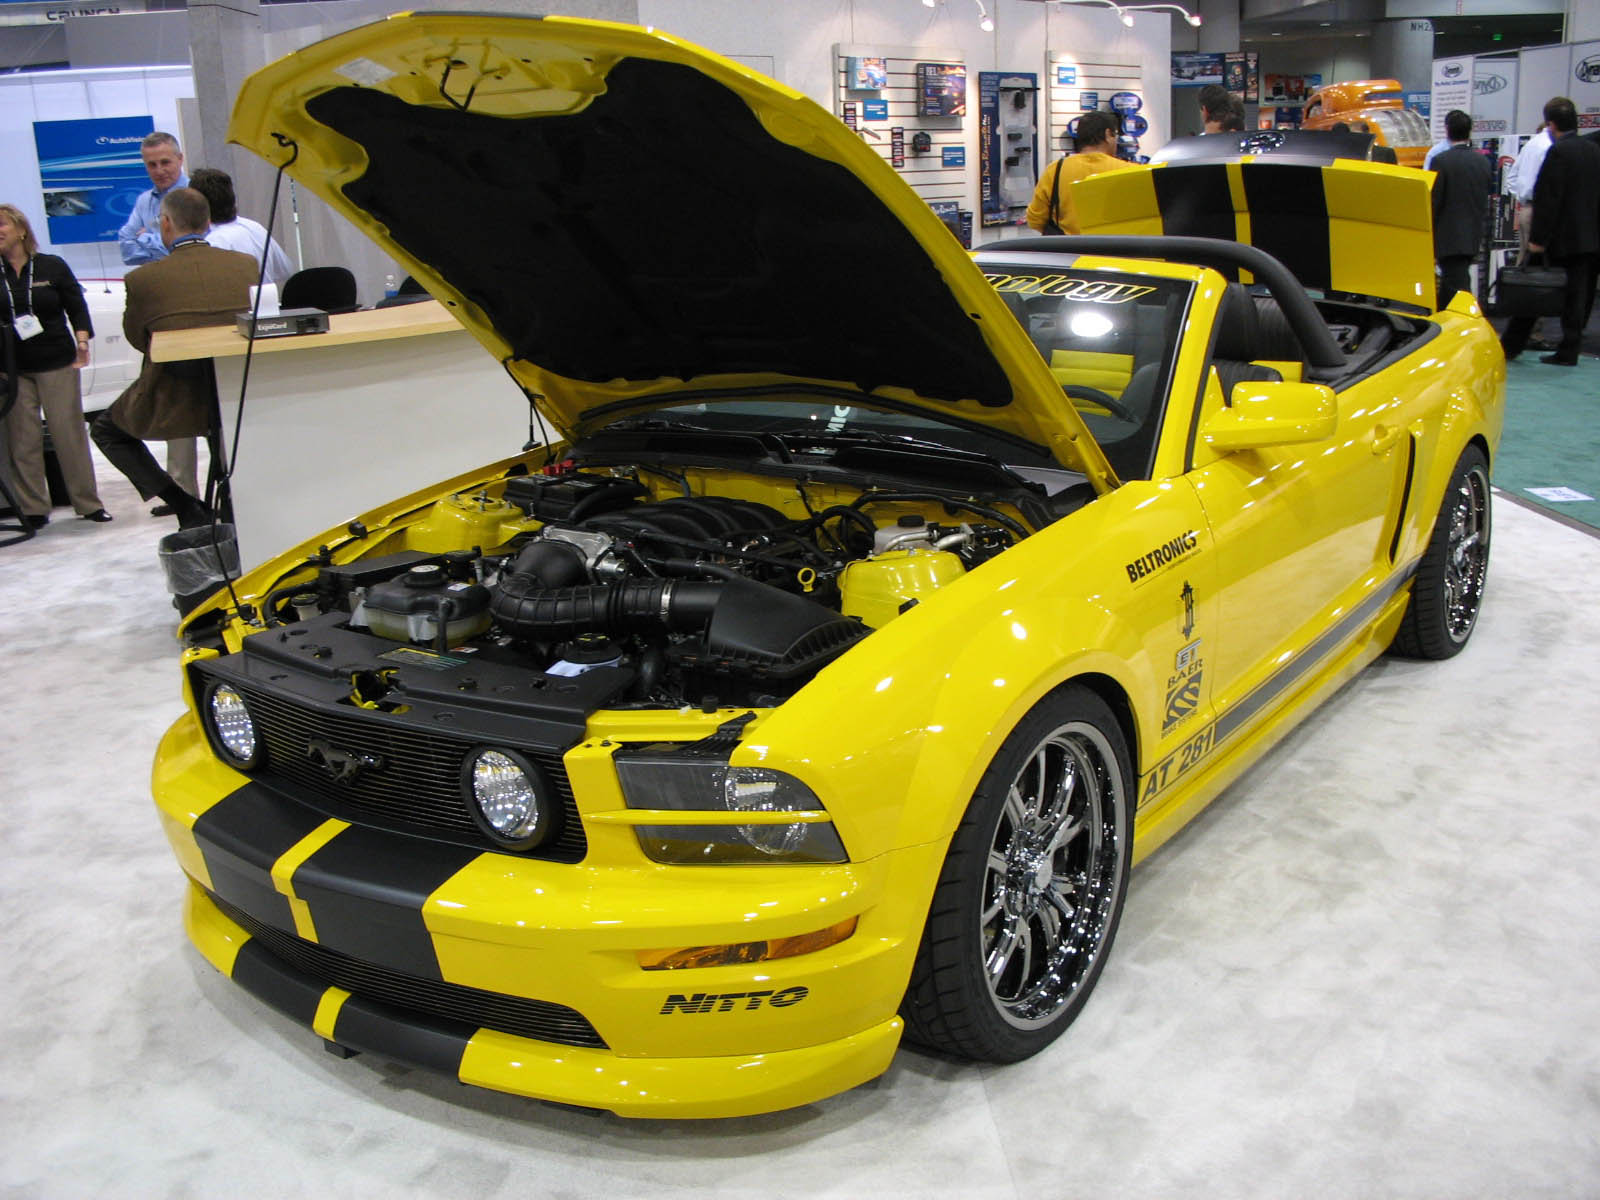 Otomotif modification car ford mustang yellow - Mustang modification ...